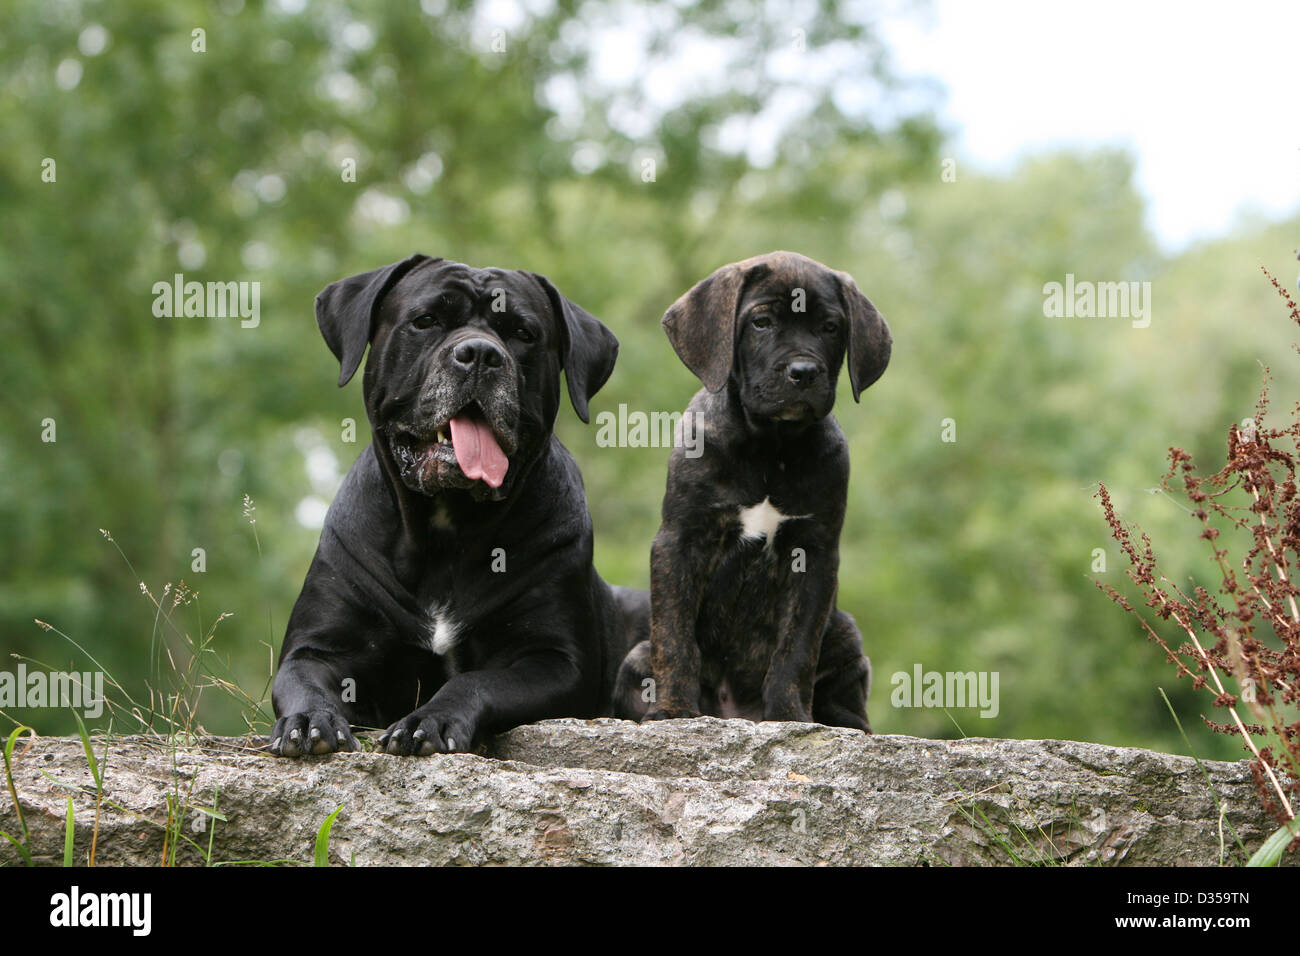 Dog Cane Corso Italian Molosser Adult And Puppy In A Meadow Stock